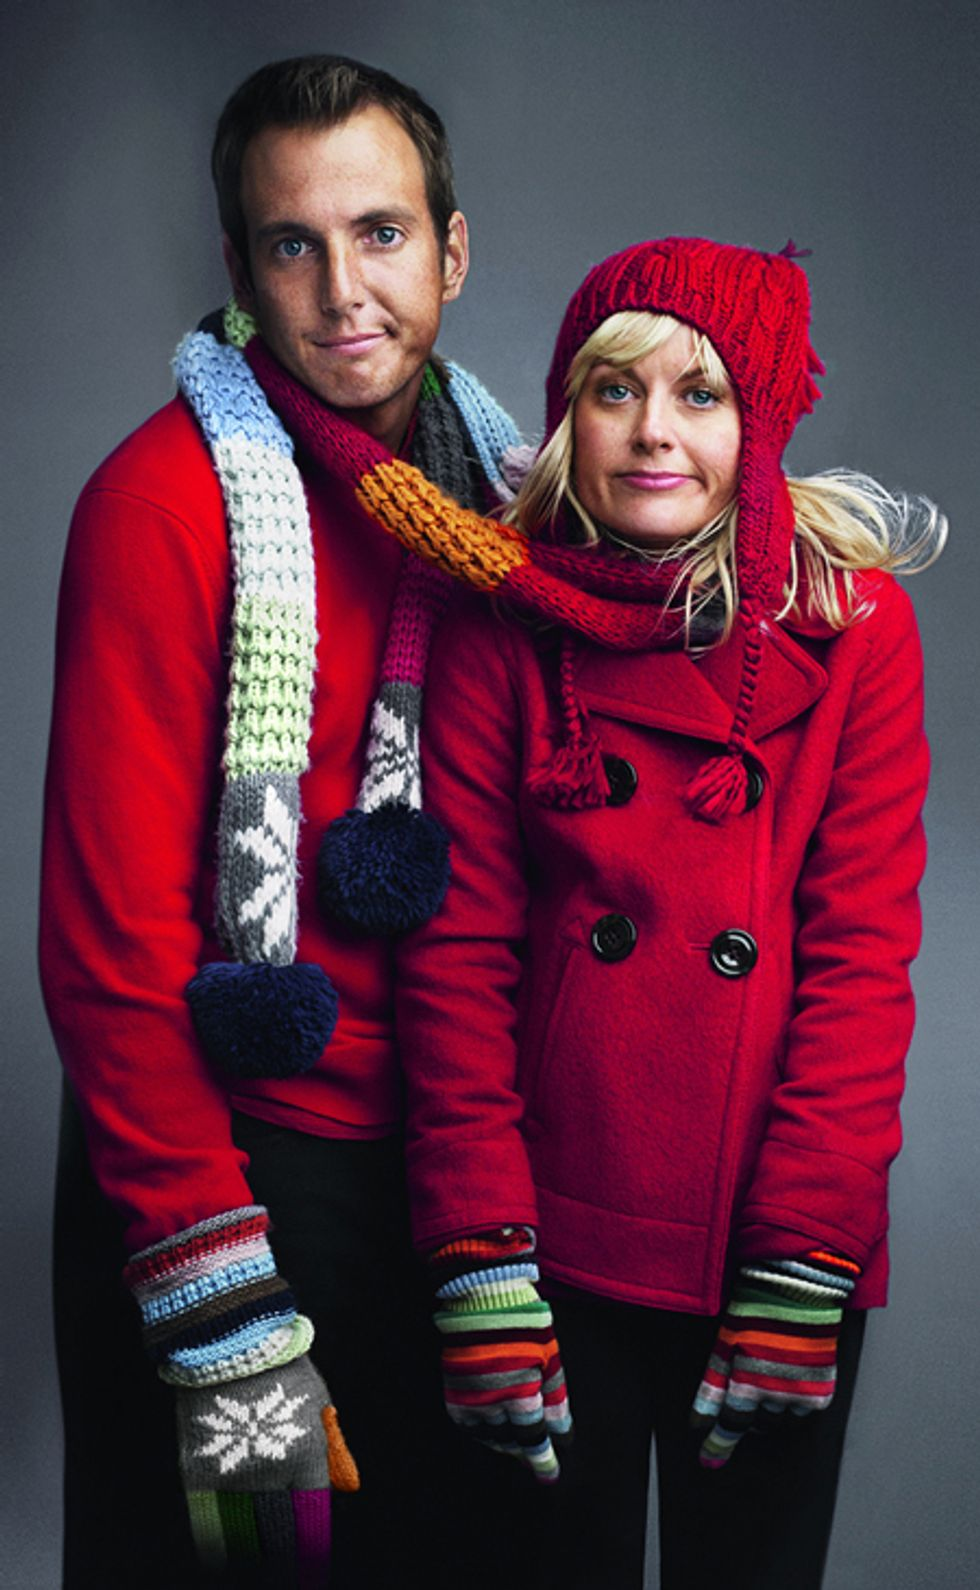 Amy Poehler, Will Arnett, John Krasinski Cute Up the Gap